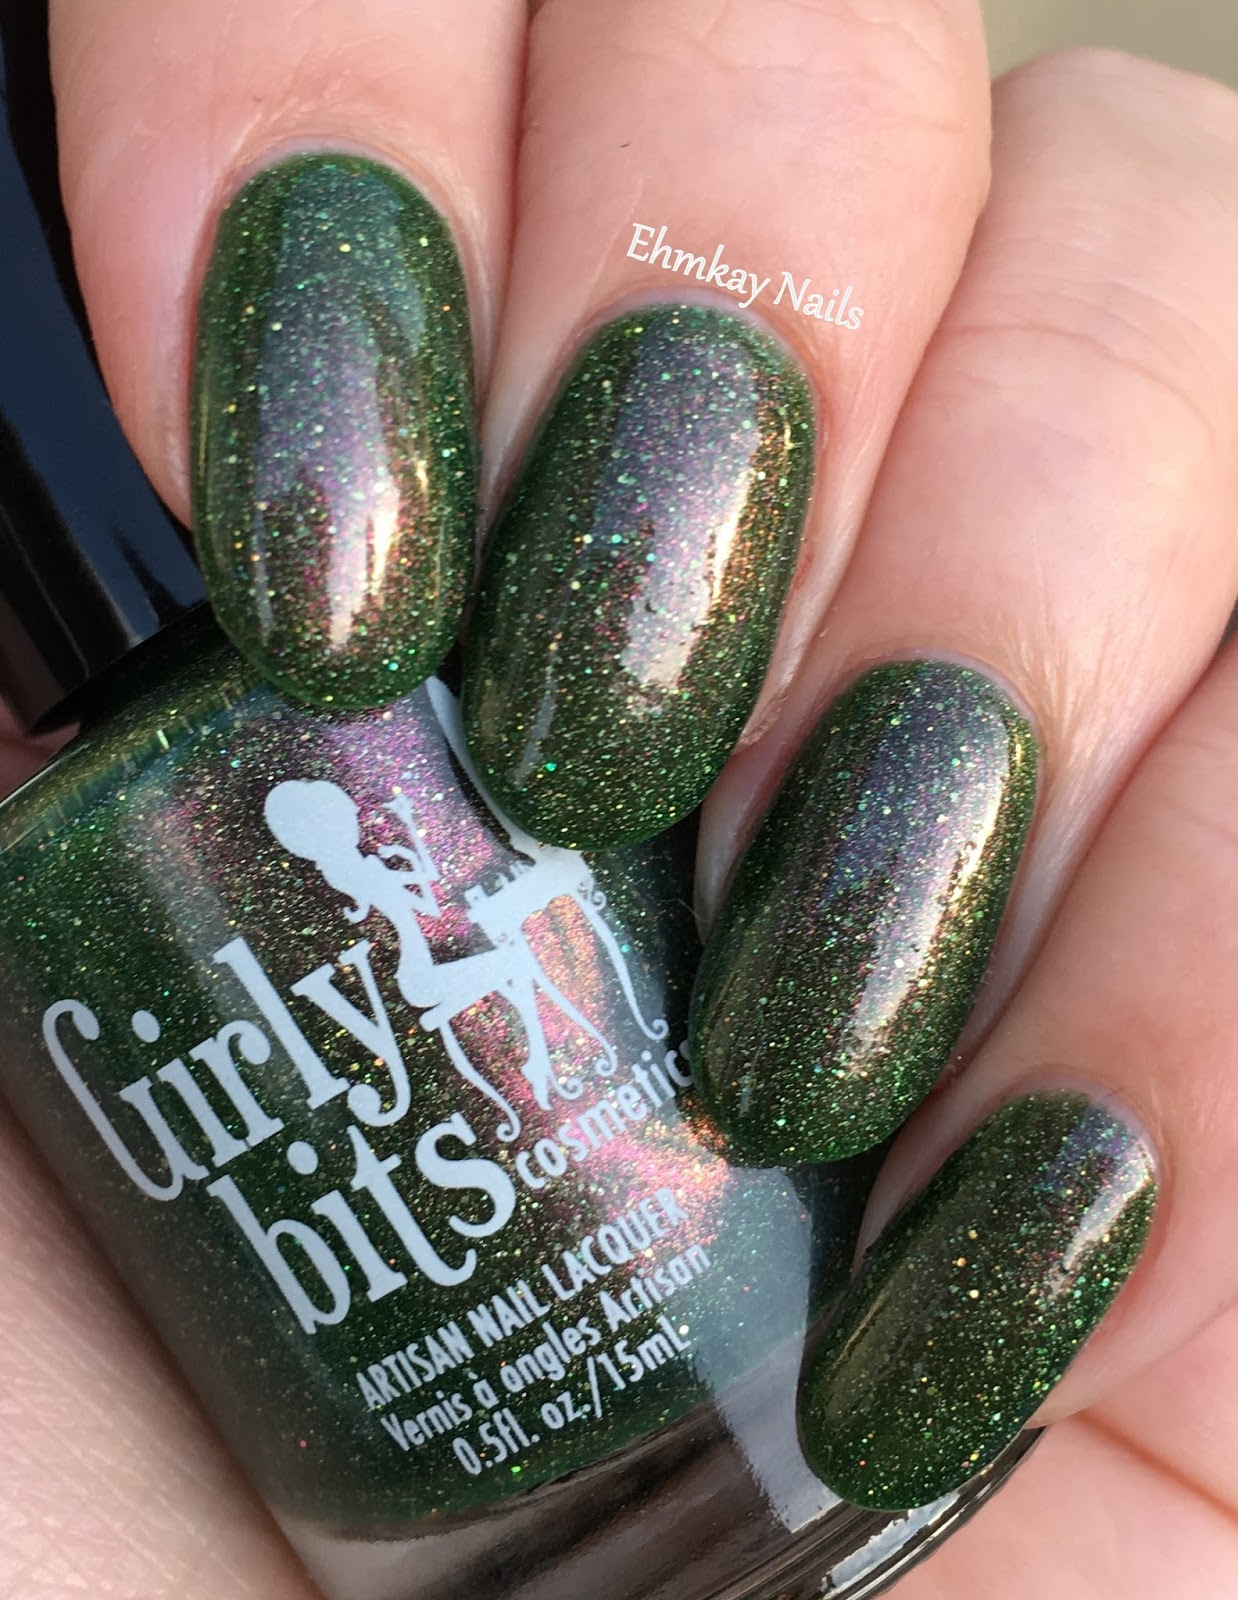 ehmkay nails: Girly Bits Colors of the Month: Grandma Got Run Over ...